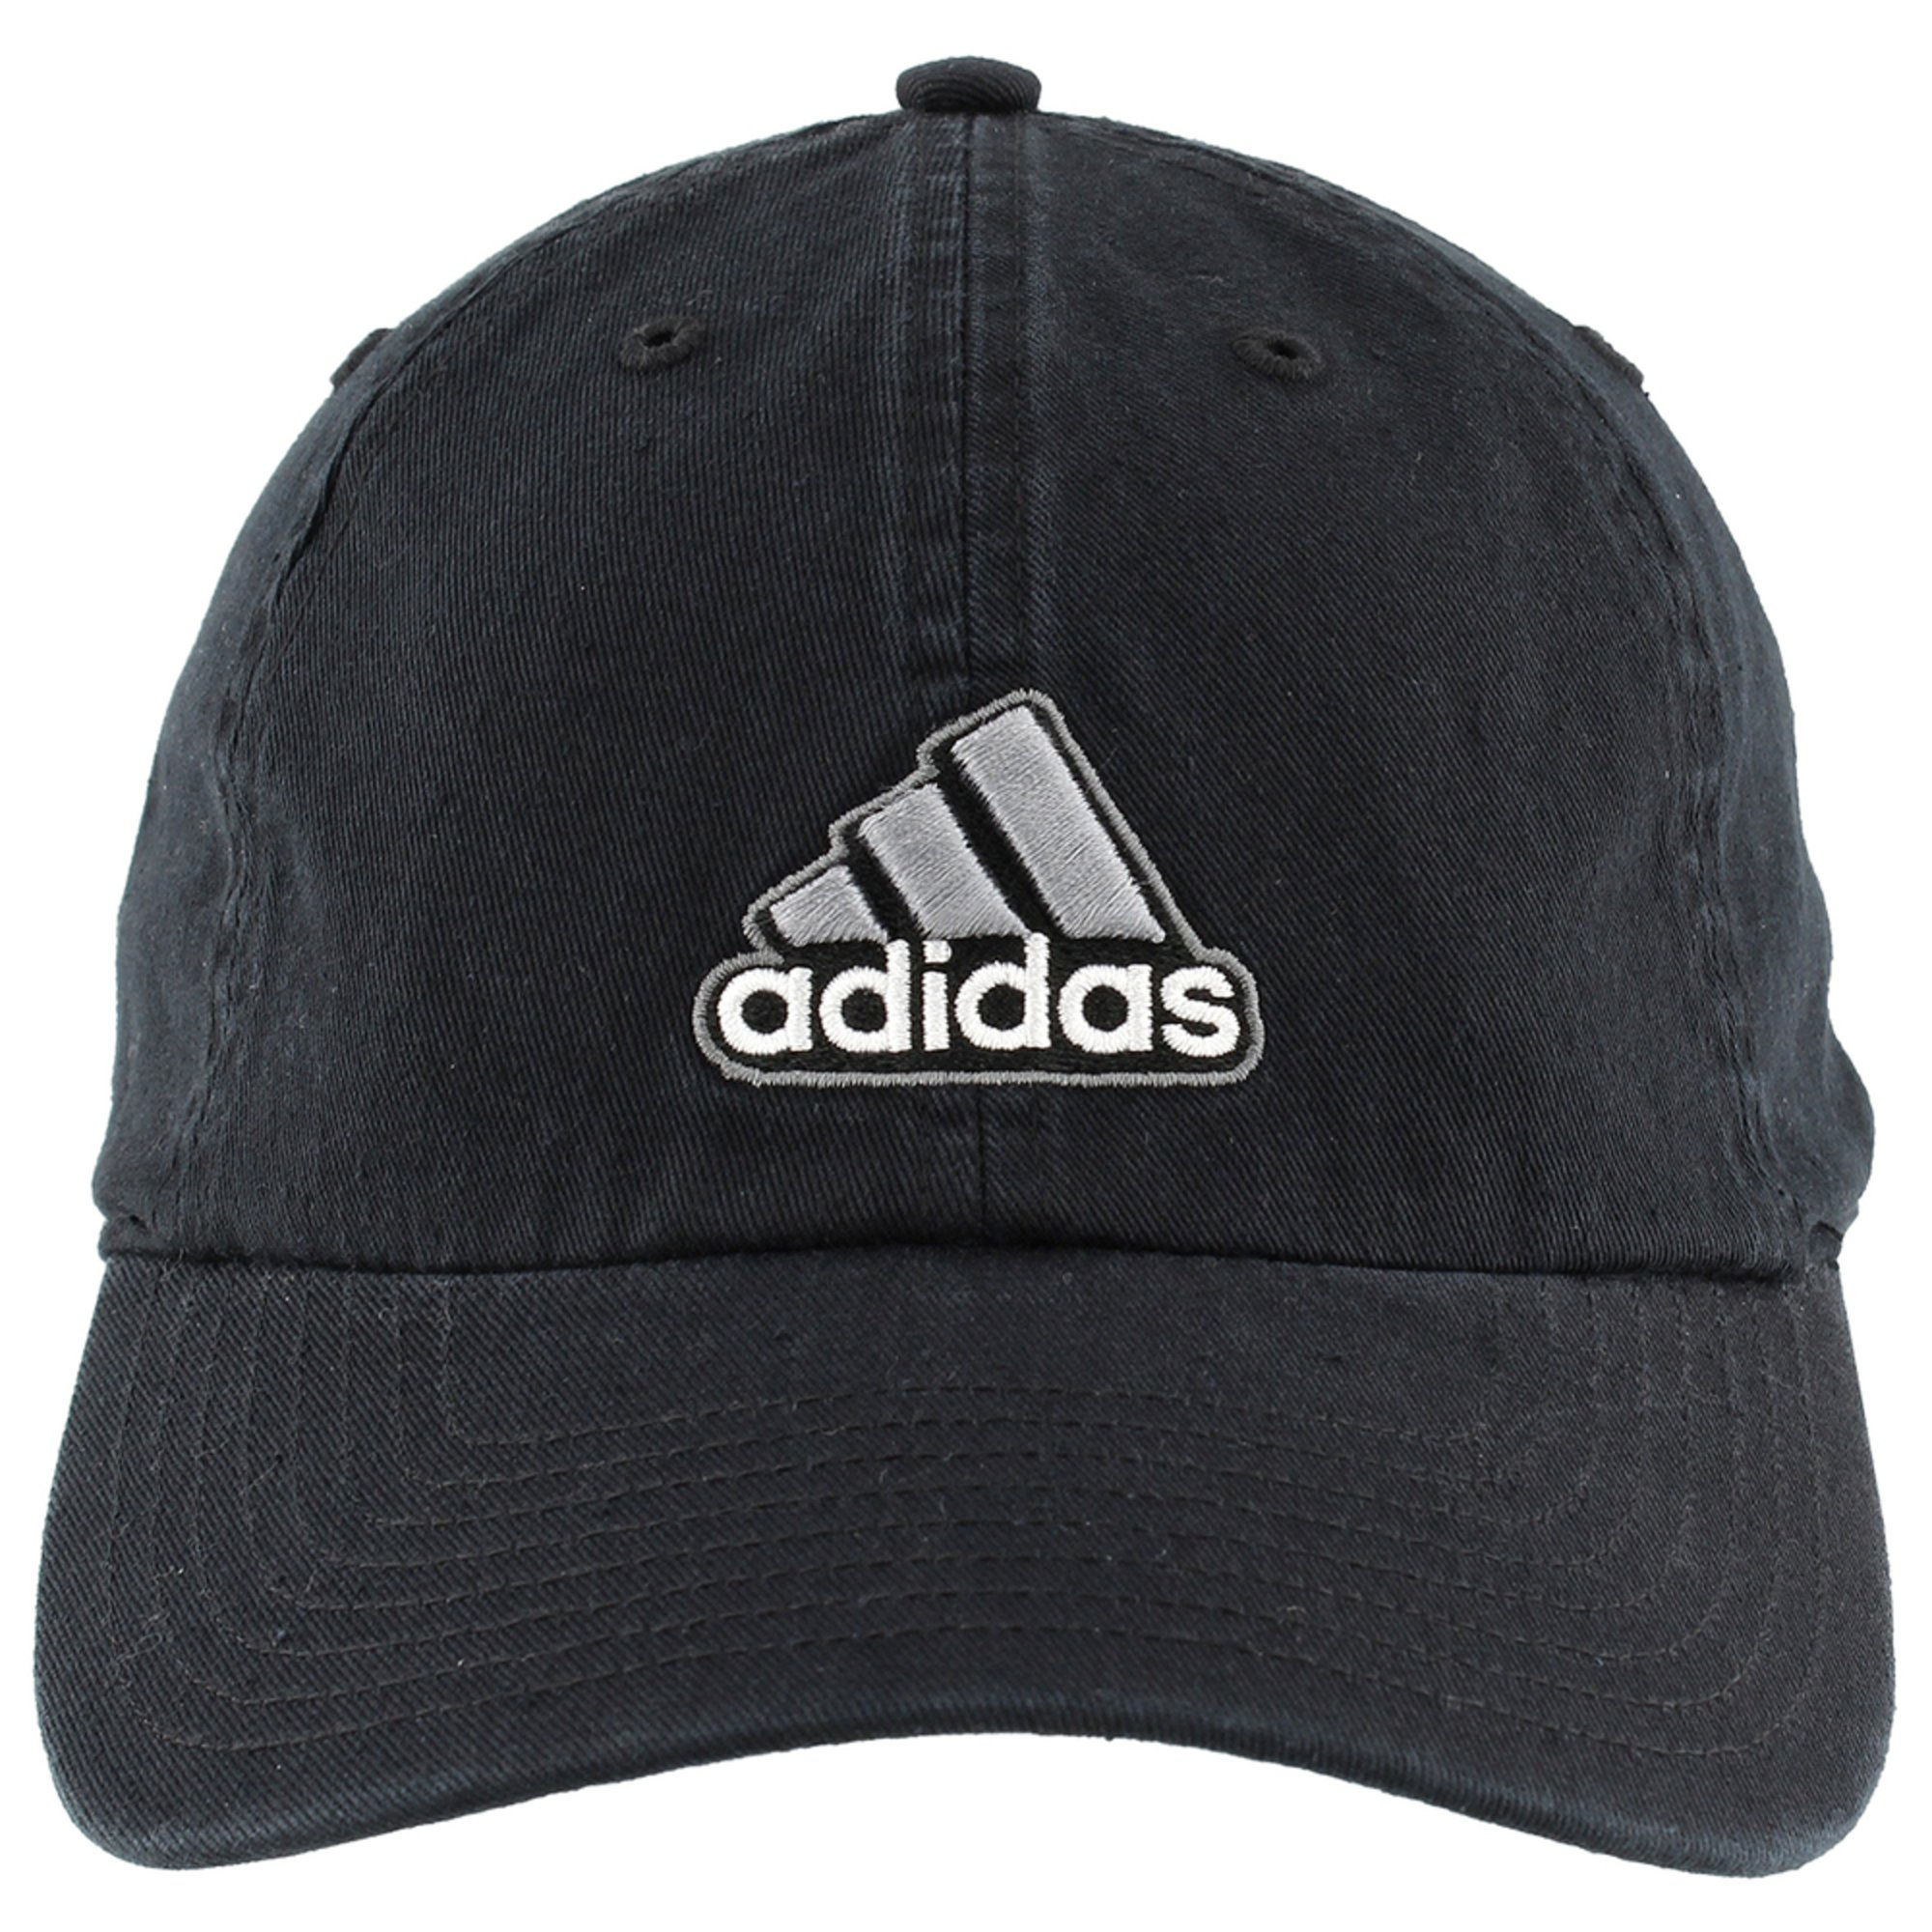 adidas. Adidas Men s Ultimate Hat d92dea7e3fb